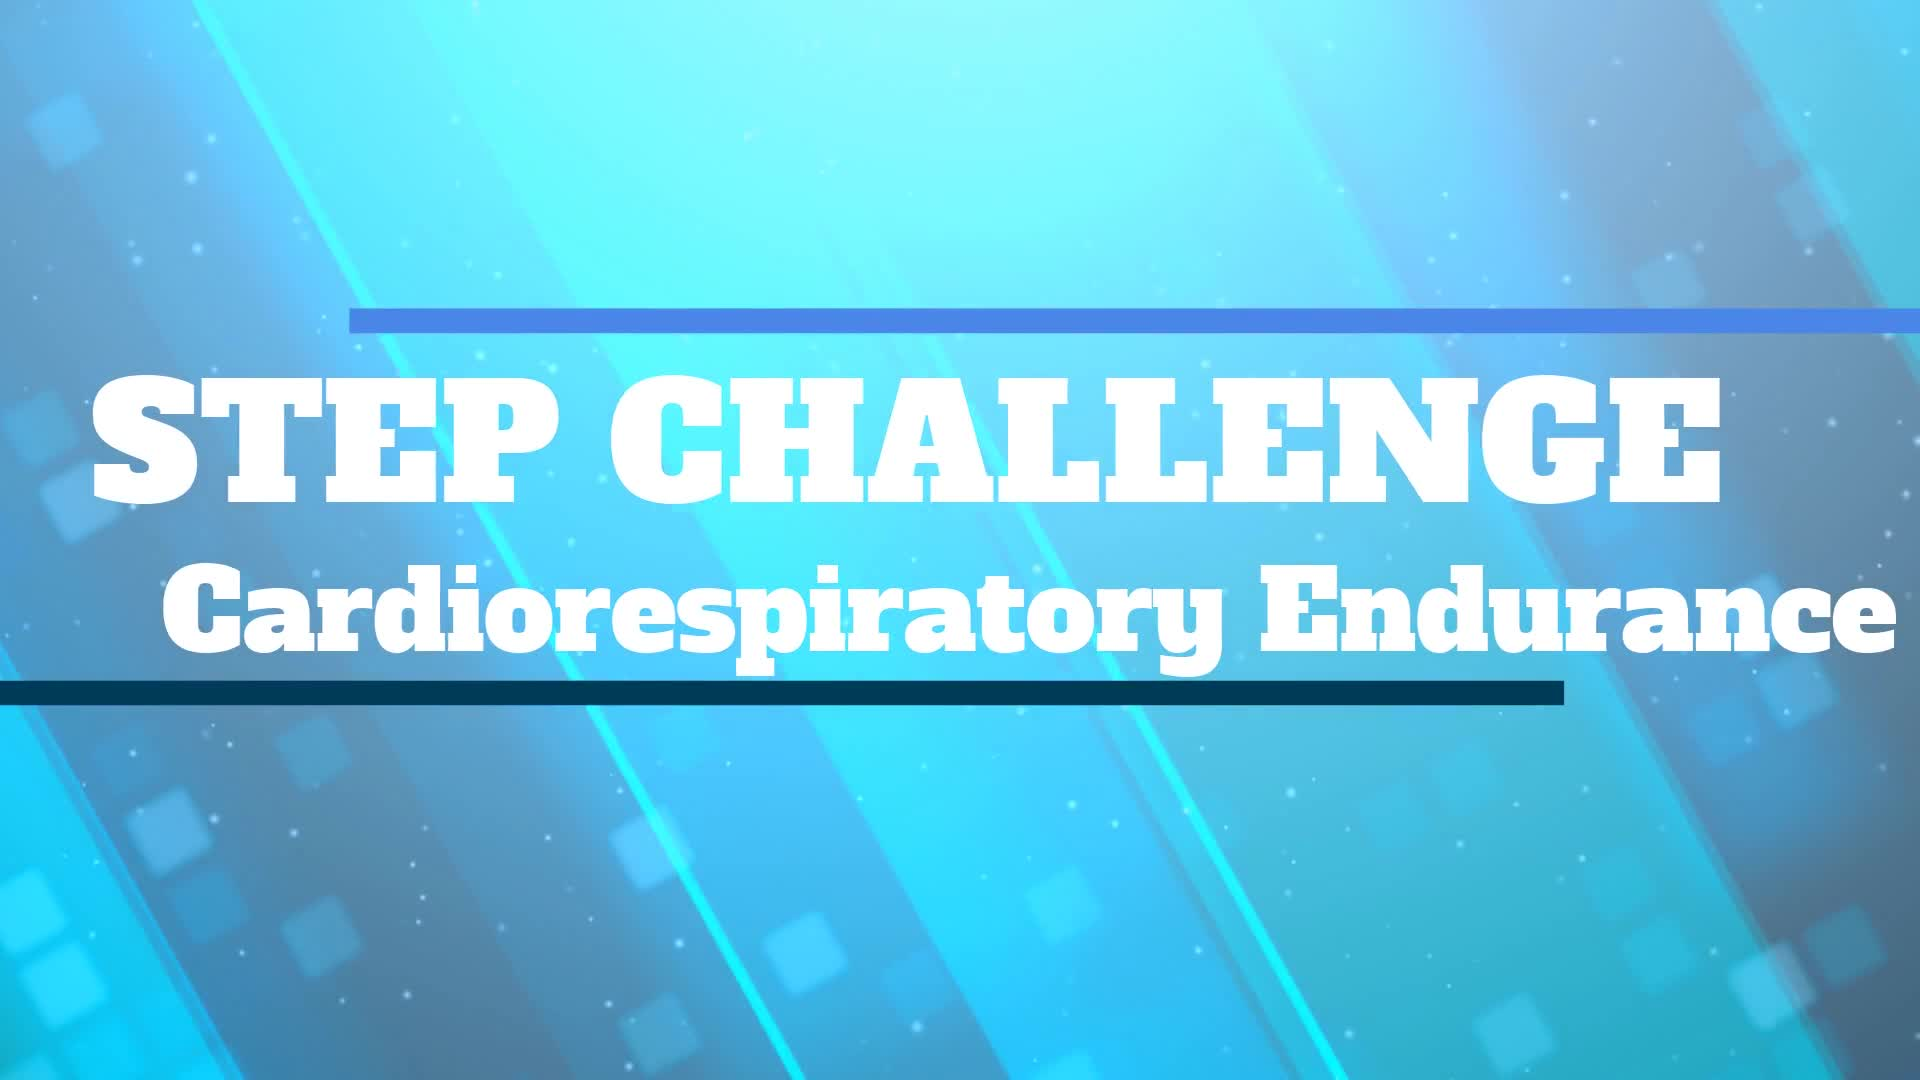 Step Challenge Introduction